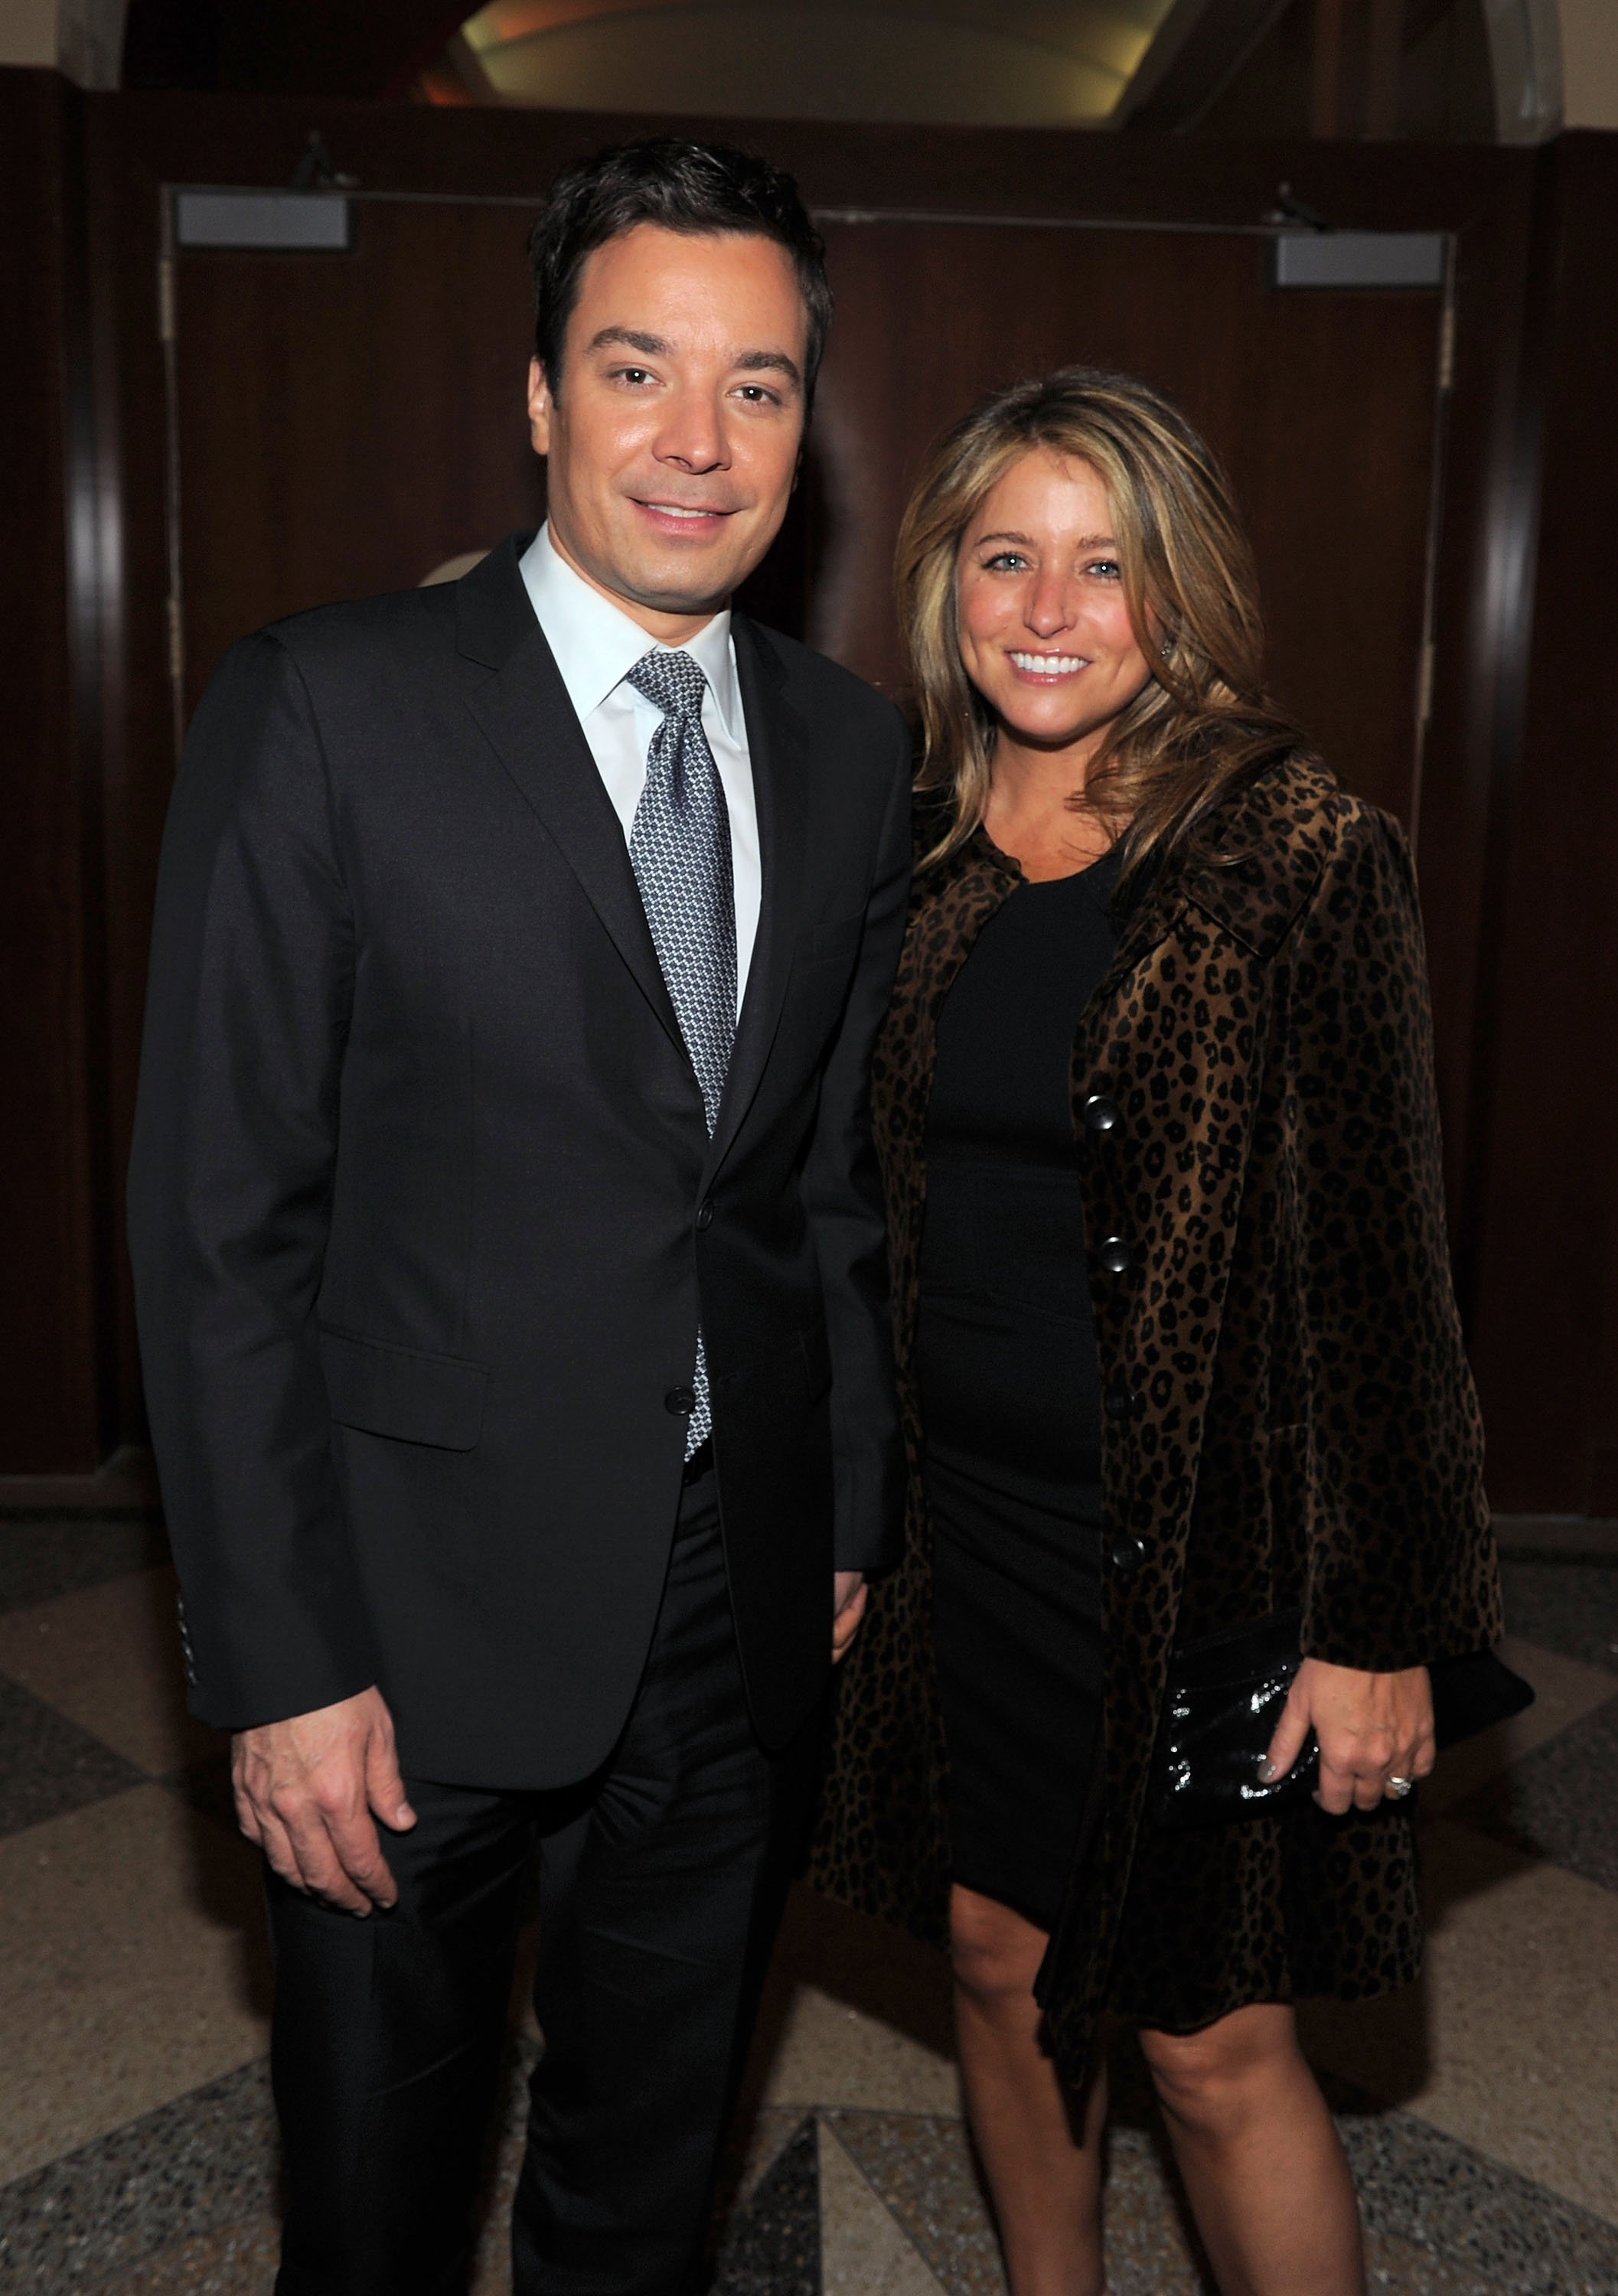 Jimmy Fallon and Nancy Juvonen attend Food Bank For New York City's Annual Can-Do Awards Gala at Pier Sixty at Chelsea Piers on April 7, 2011 in New York City. | Photo: GettyImages